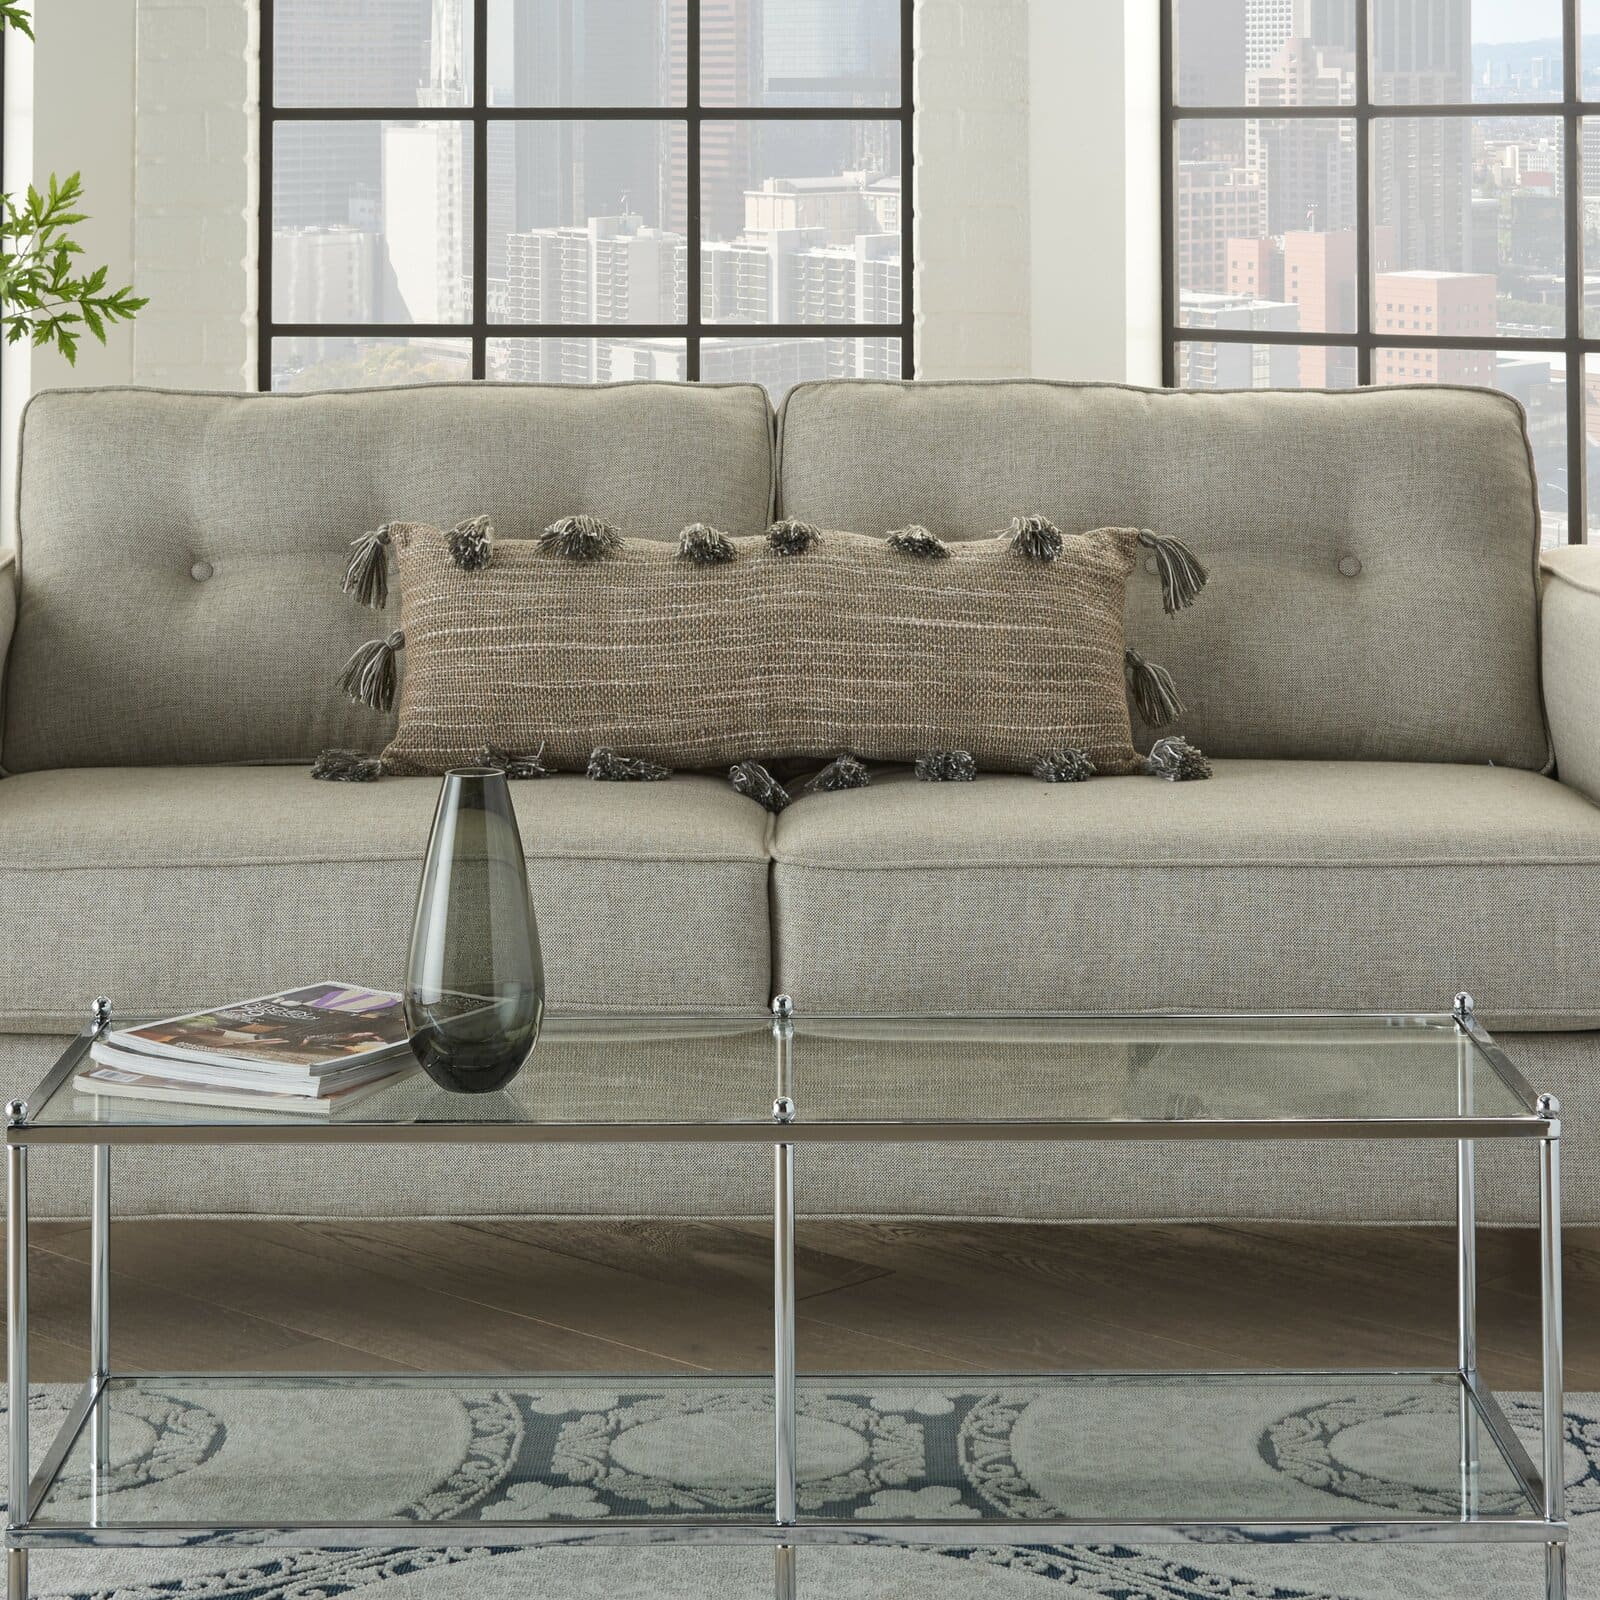 Add Some Fun to a Plain Grey Sofa With Tassels